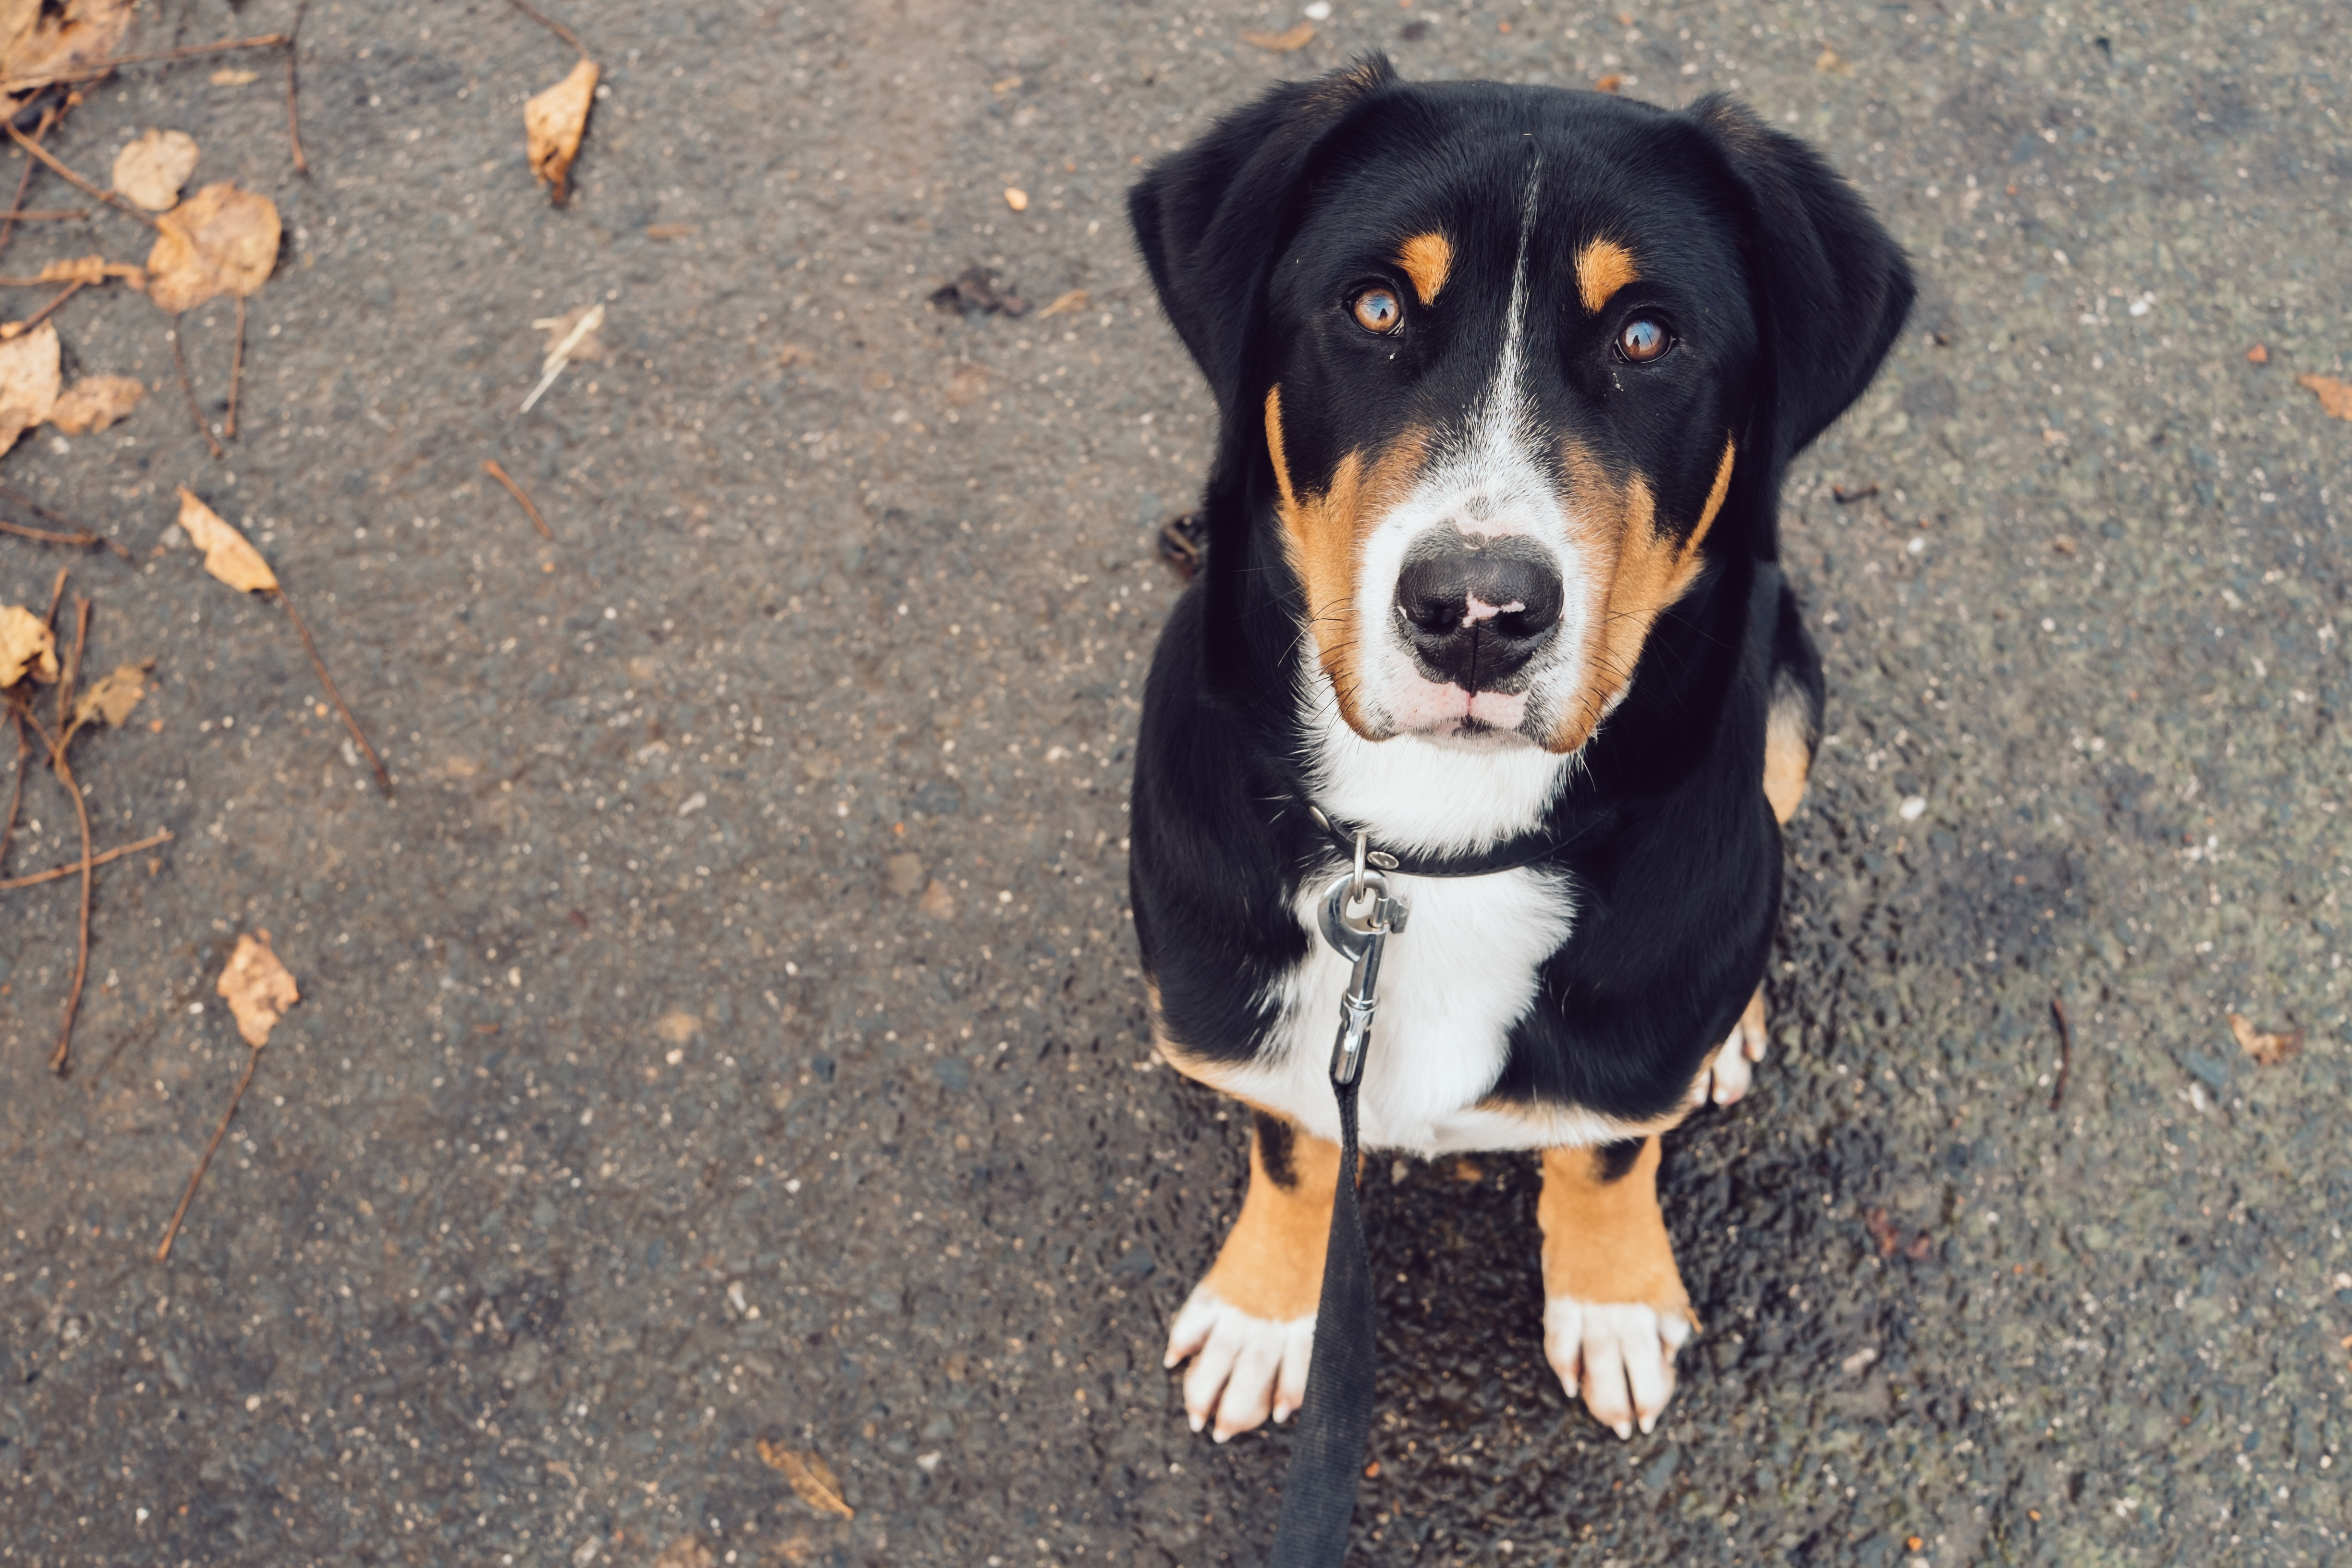 white, black, and brown dog sitting on gray soil looking up